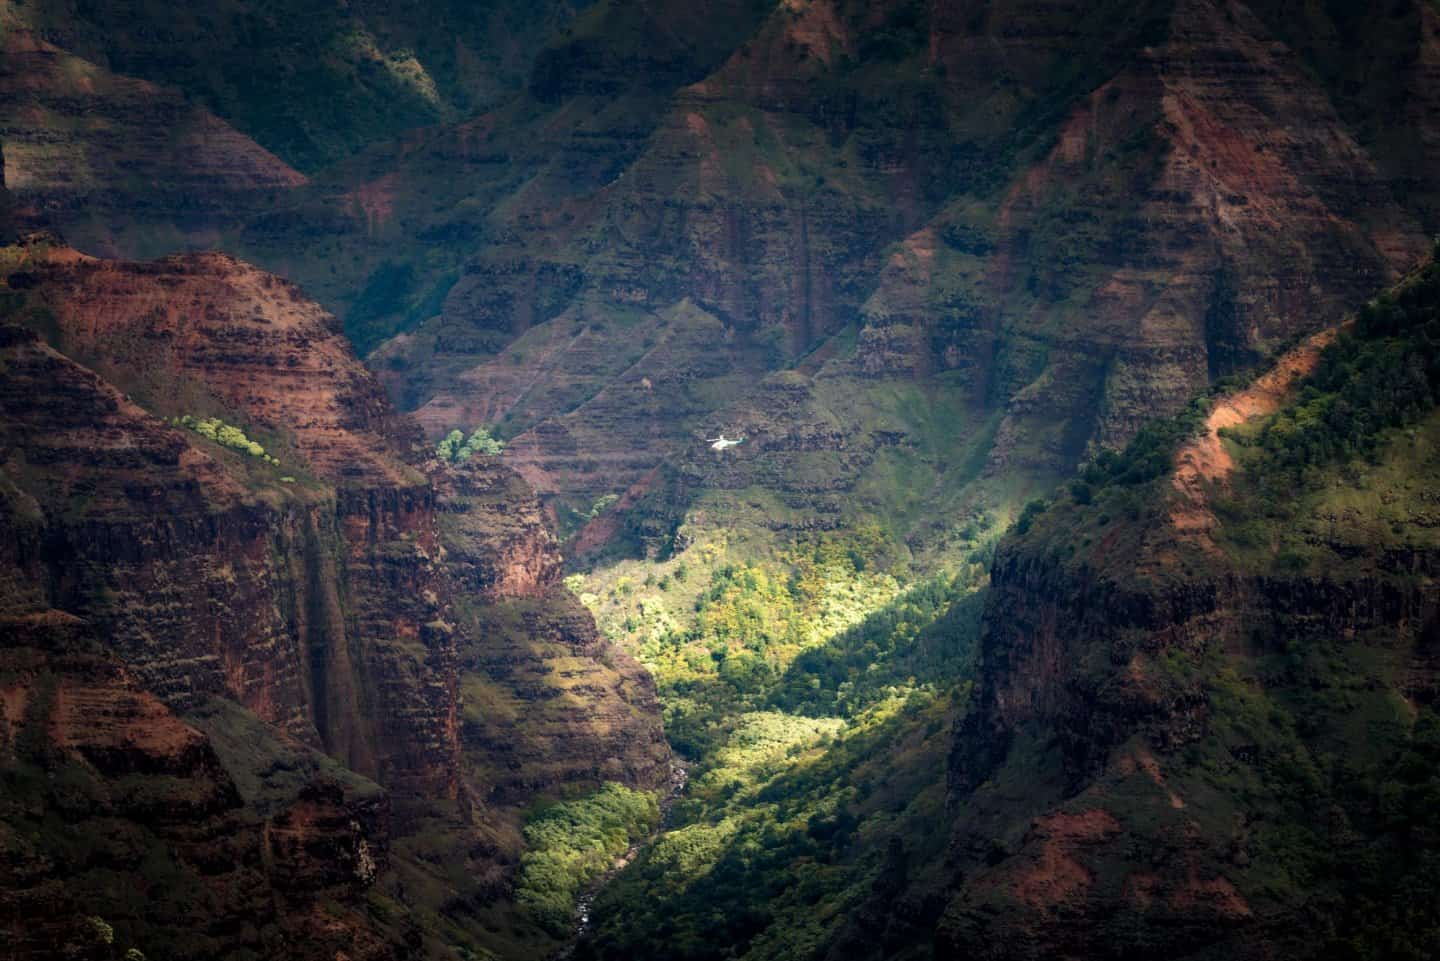 A helicopter photography tour descends deep into the Waimea Canyon.